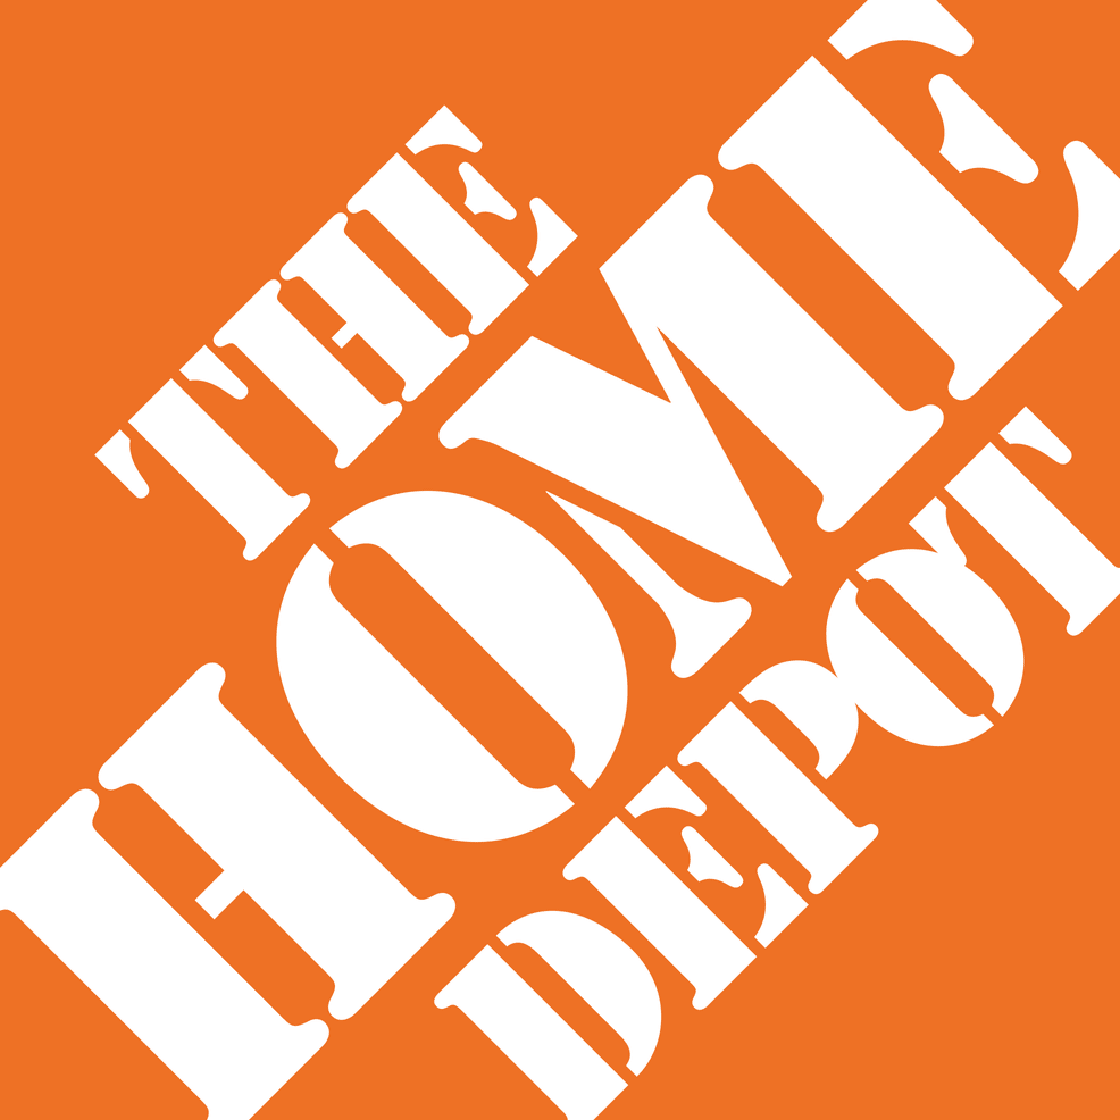 <strong>Tablet Application Design</strong>. The Home Depot's seasonal, digital catalogue featuring design tips, new products and exclusive content from renowned designers.